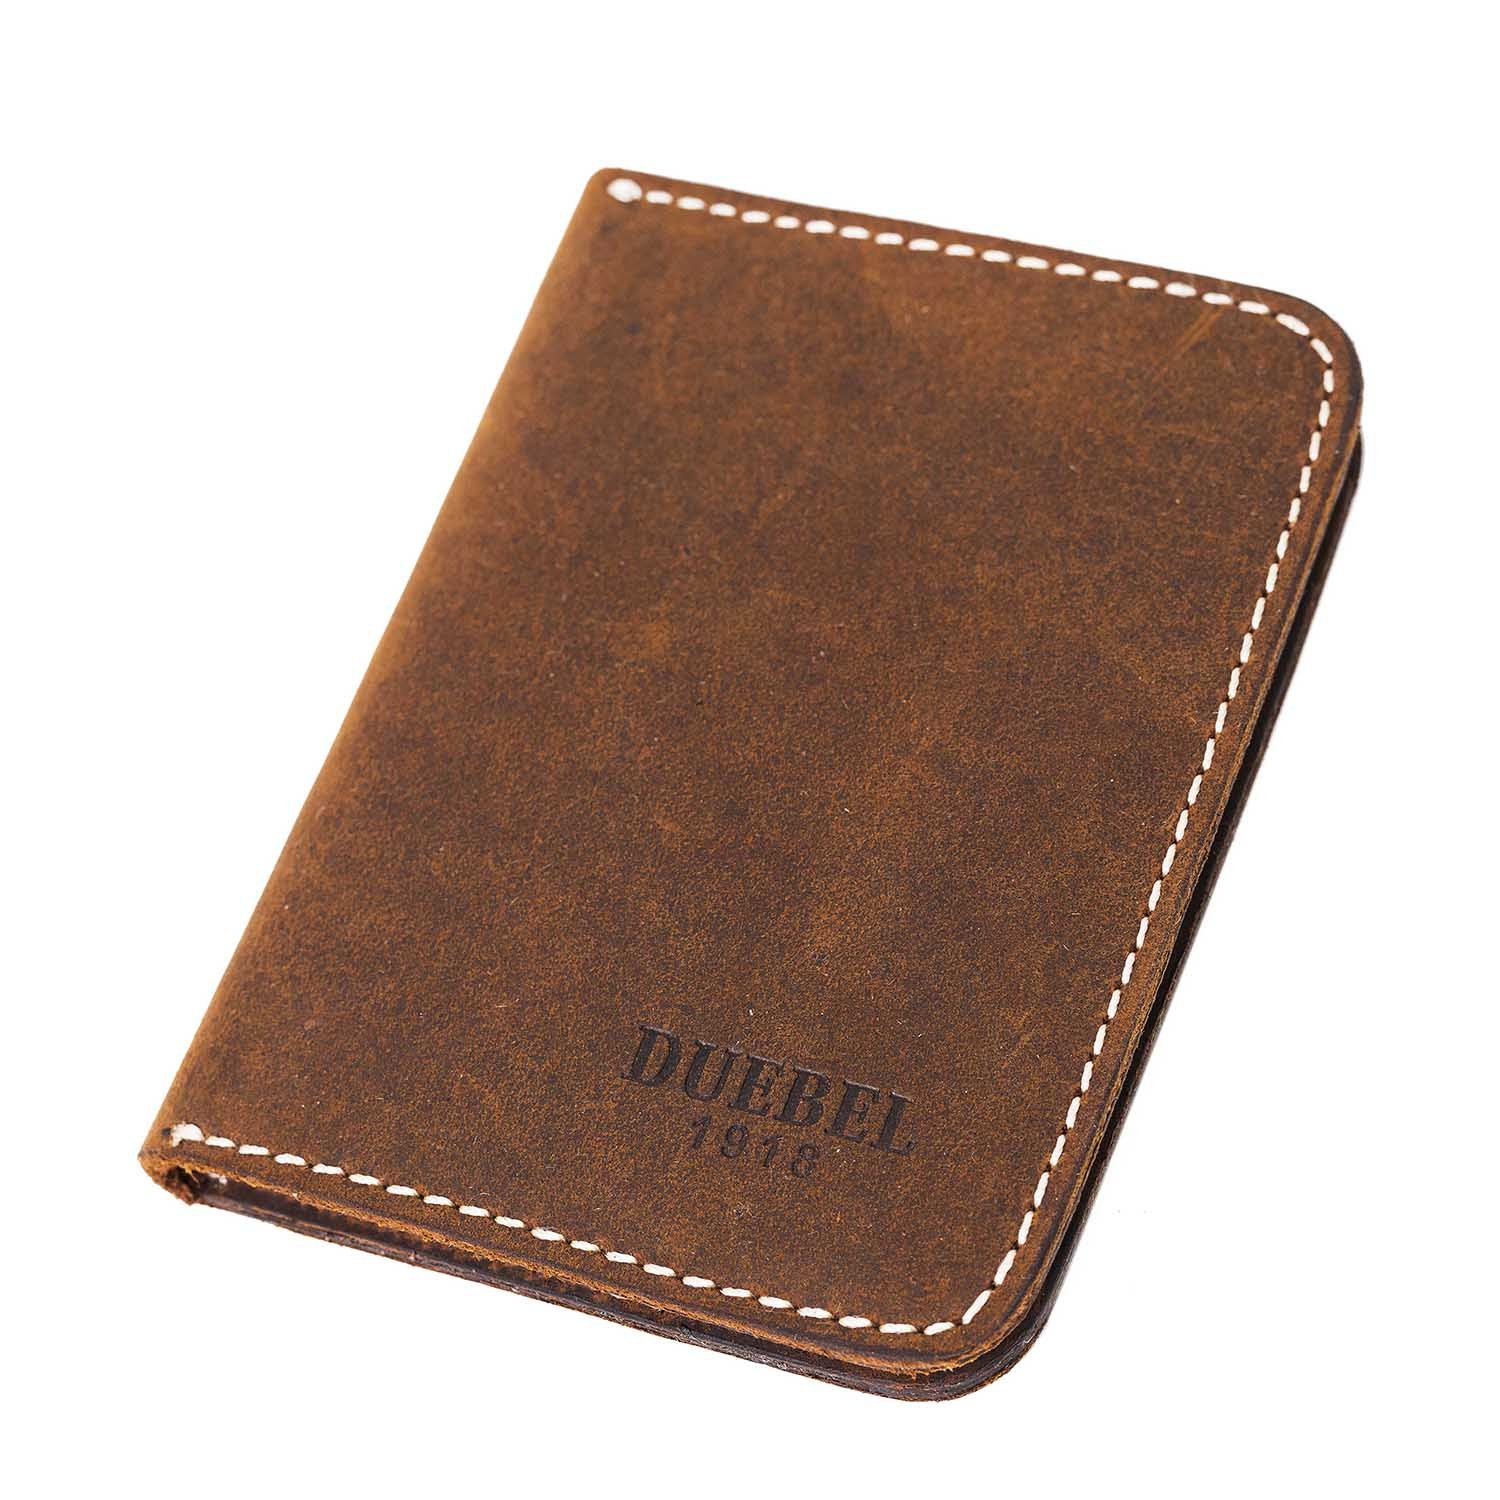 DUEBEL Small Leather Wallet, Front Pocket Wallet for Men, Minimalist Card Holder (DBL01-Brown without Magnet)